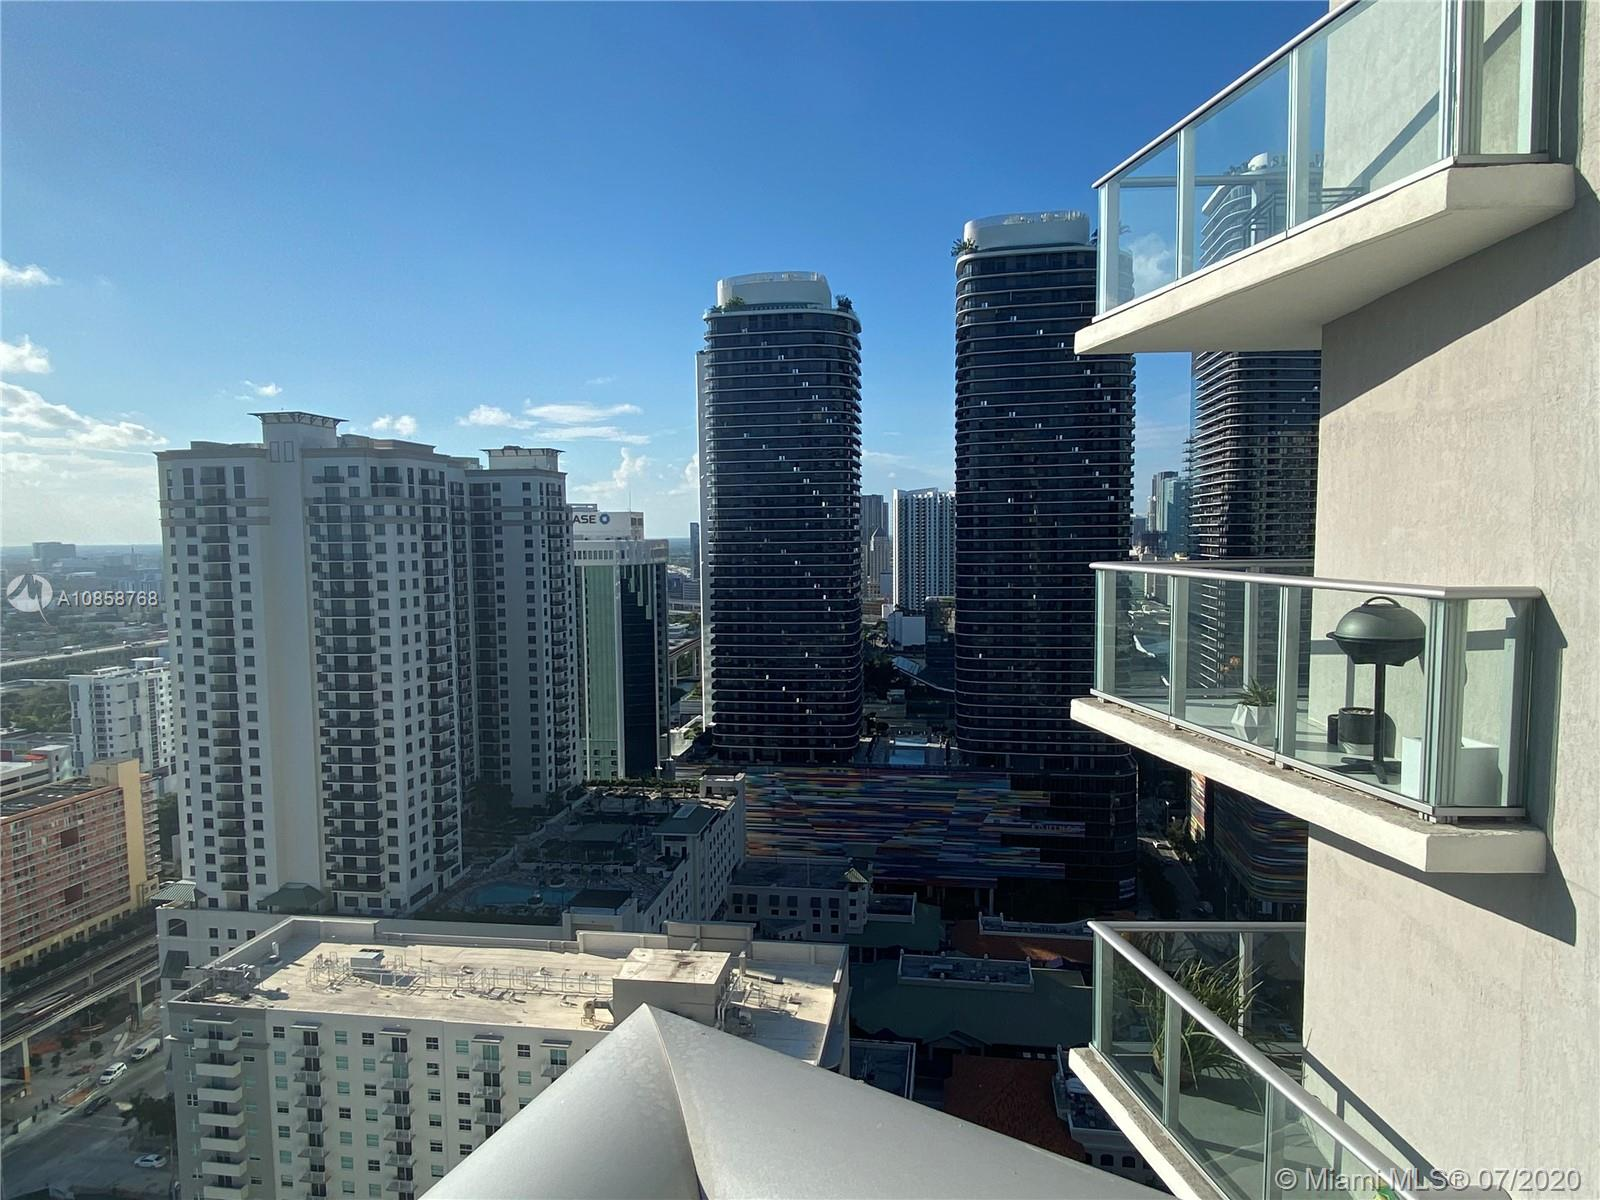 Great Unit in brand new building, enjoy the wonderful Brickell area, walking distance to all the entertainment. Amazing large balcony!! Amenities include a roof top pool, fitness center, movie theater, kids playroom.